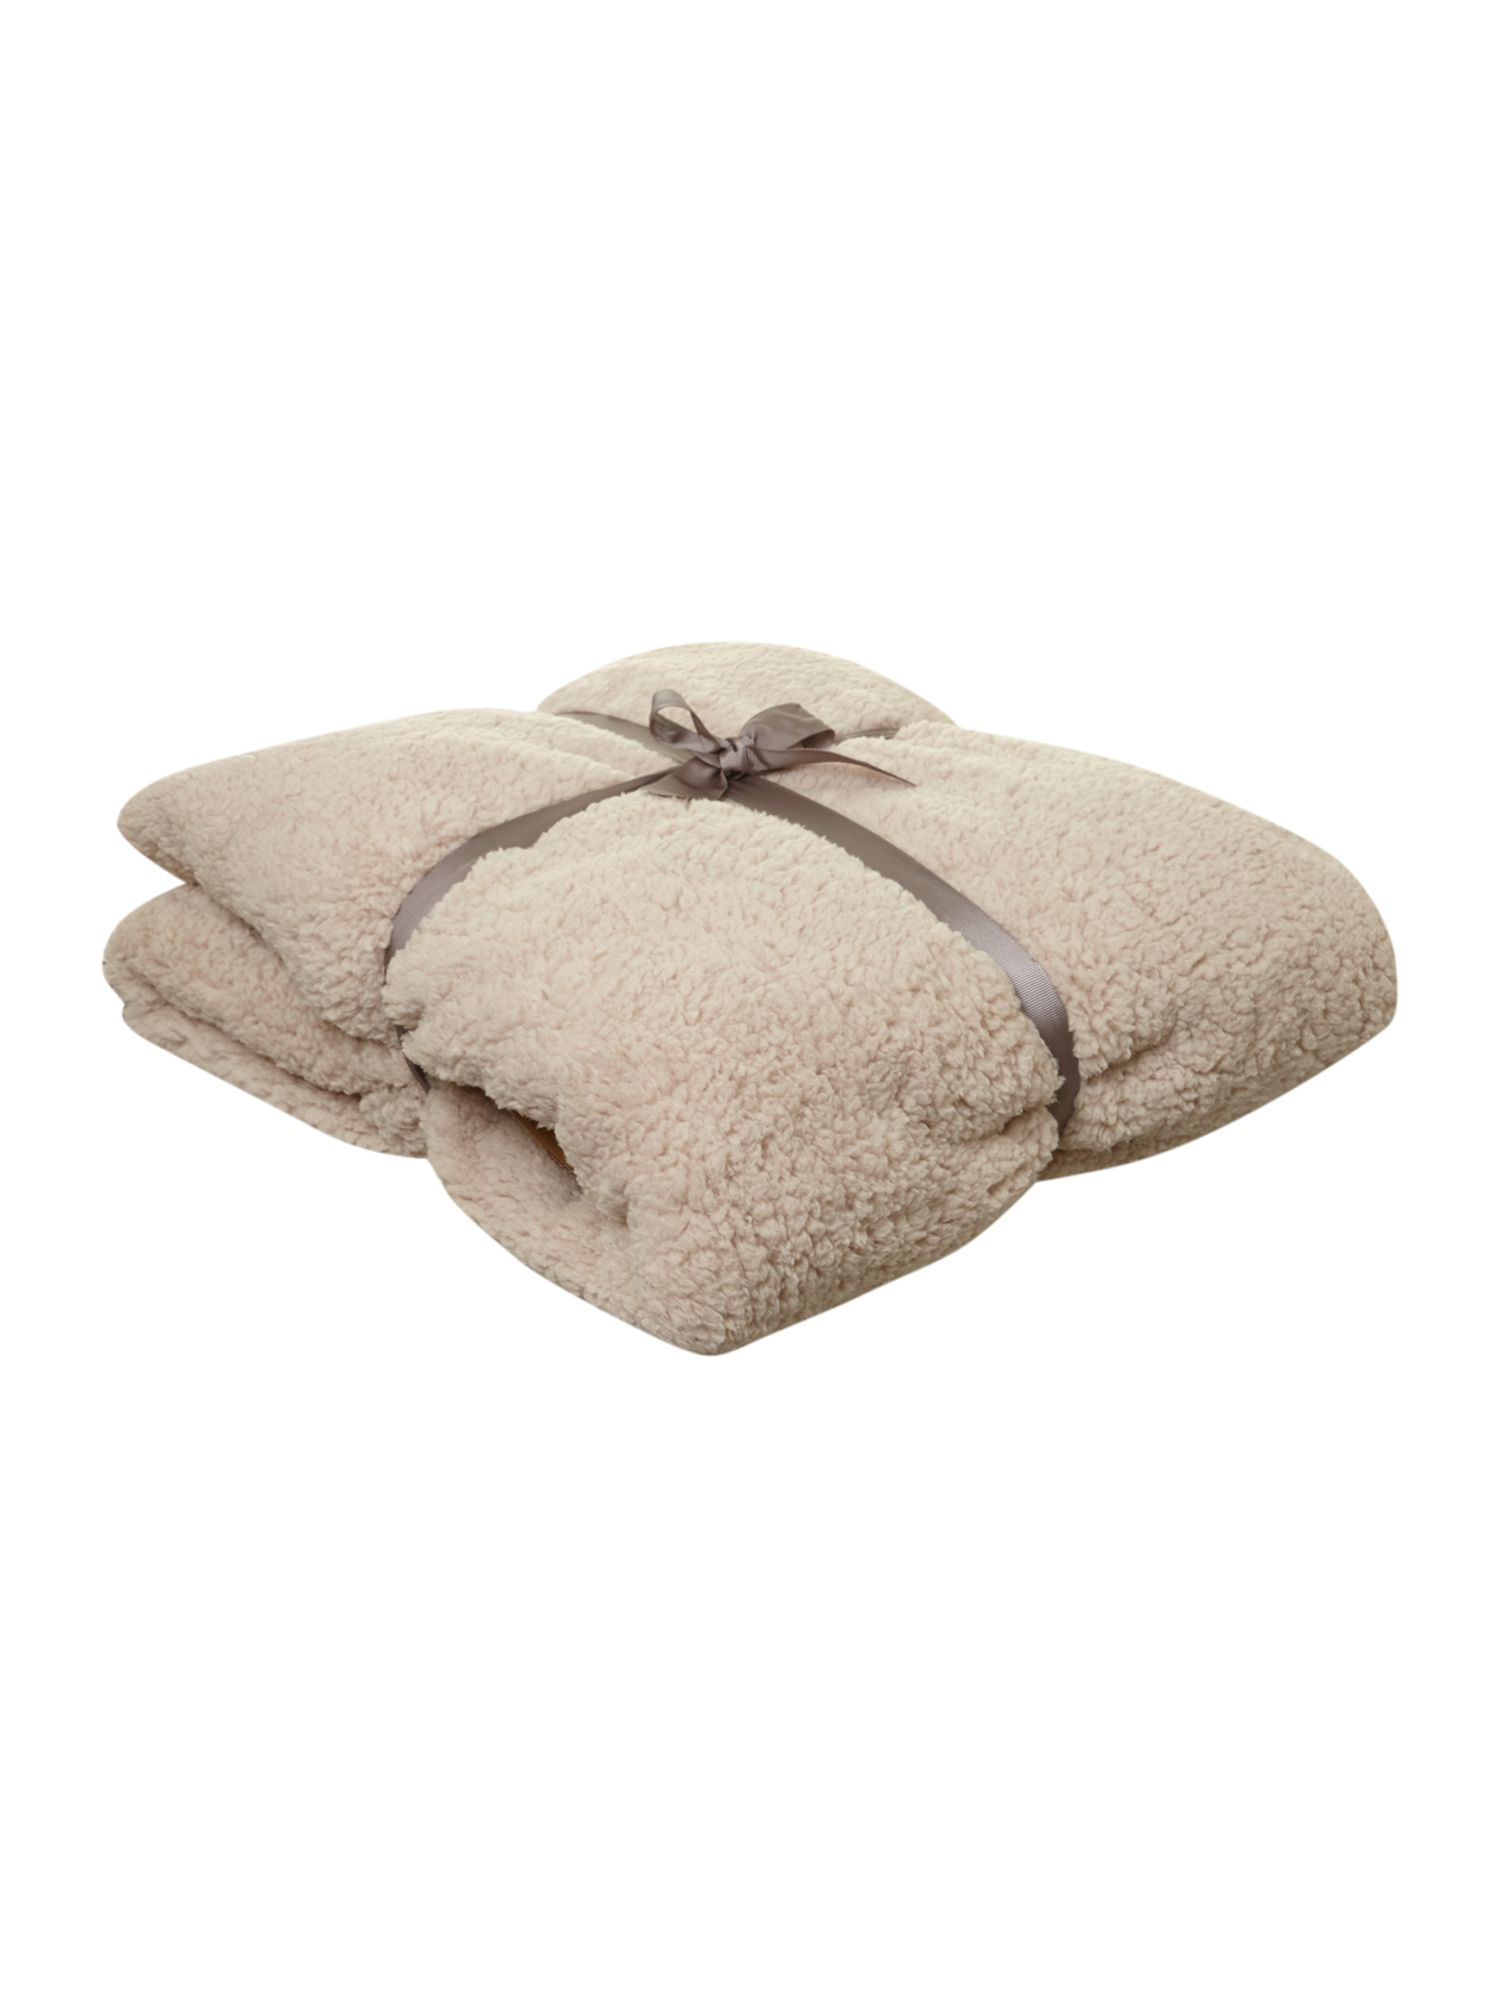 Beige corduroy fleece blanket